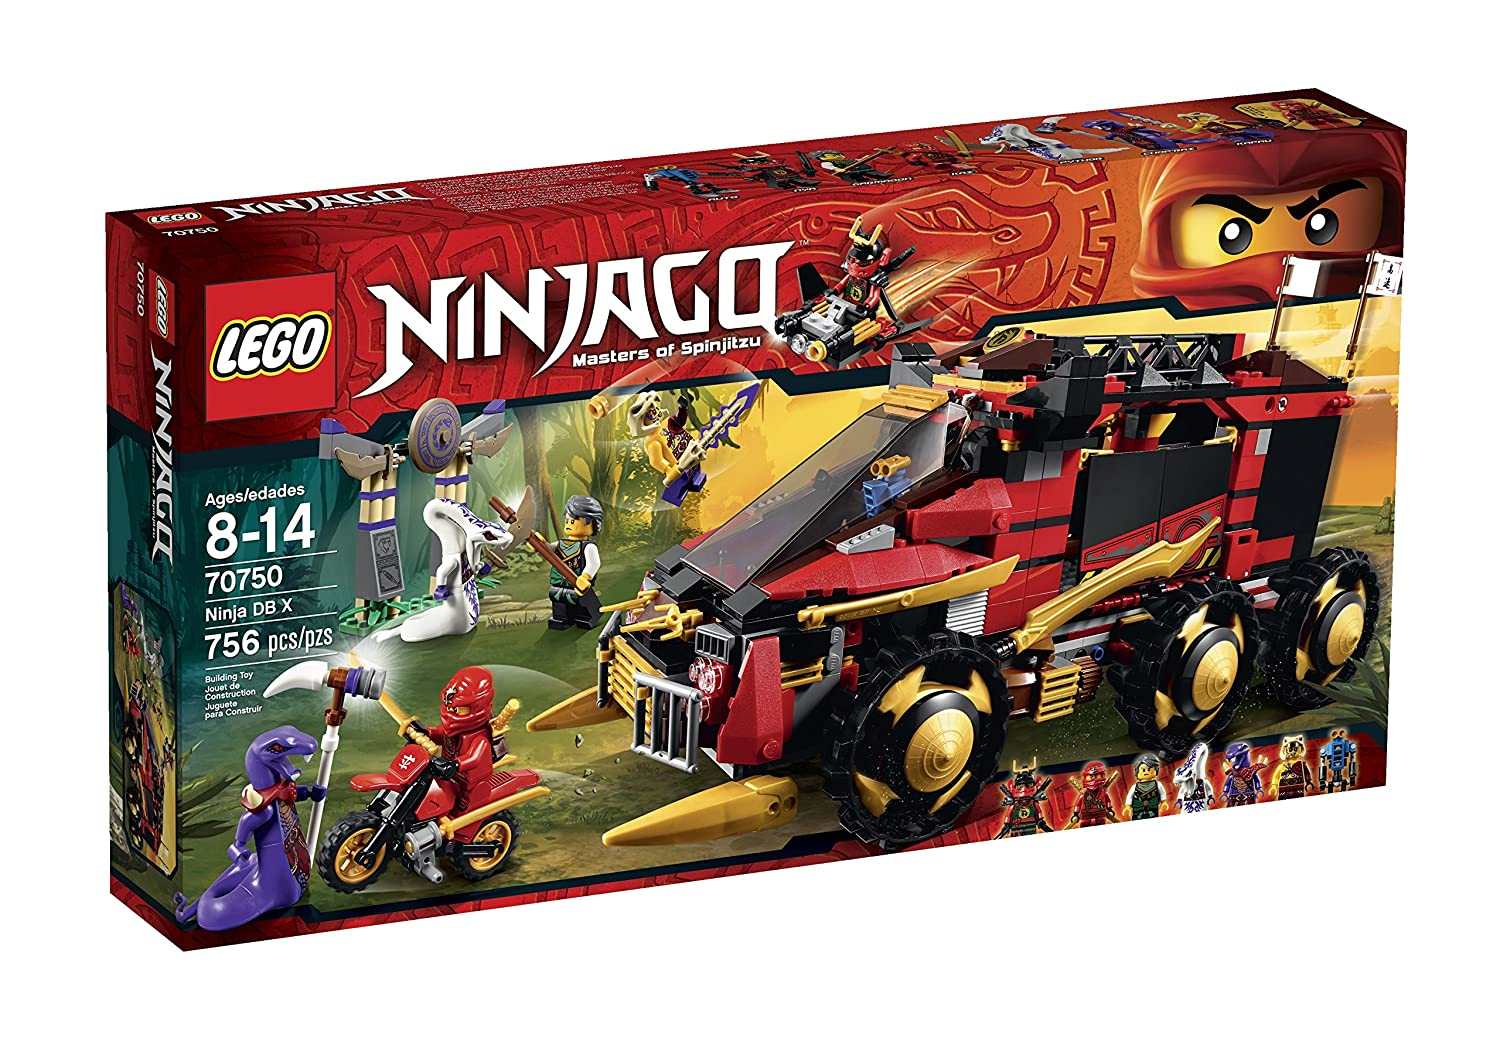 LEGO Ninjago Ninja DB X Toy by LEGO: Amazon.es: Juguetes y ...